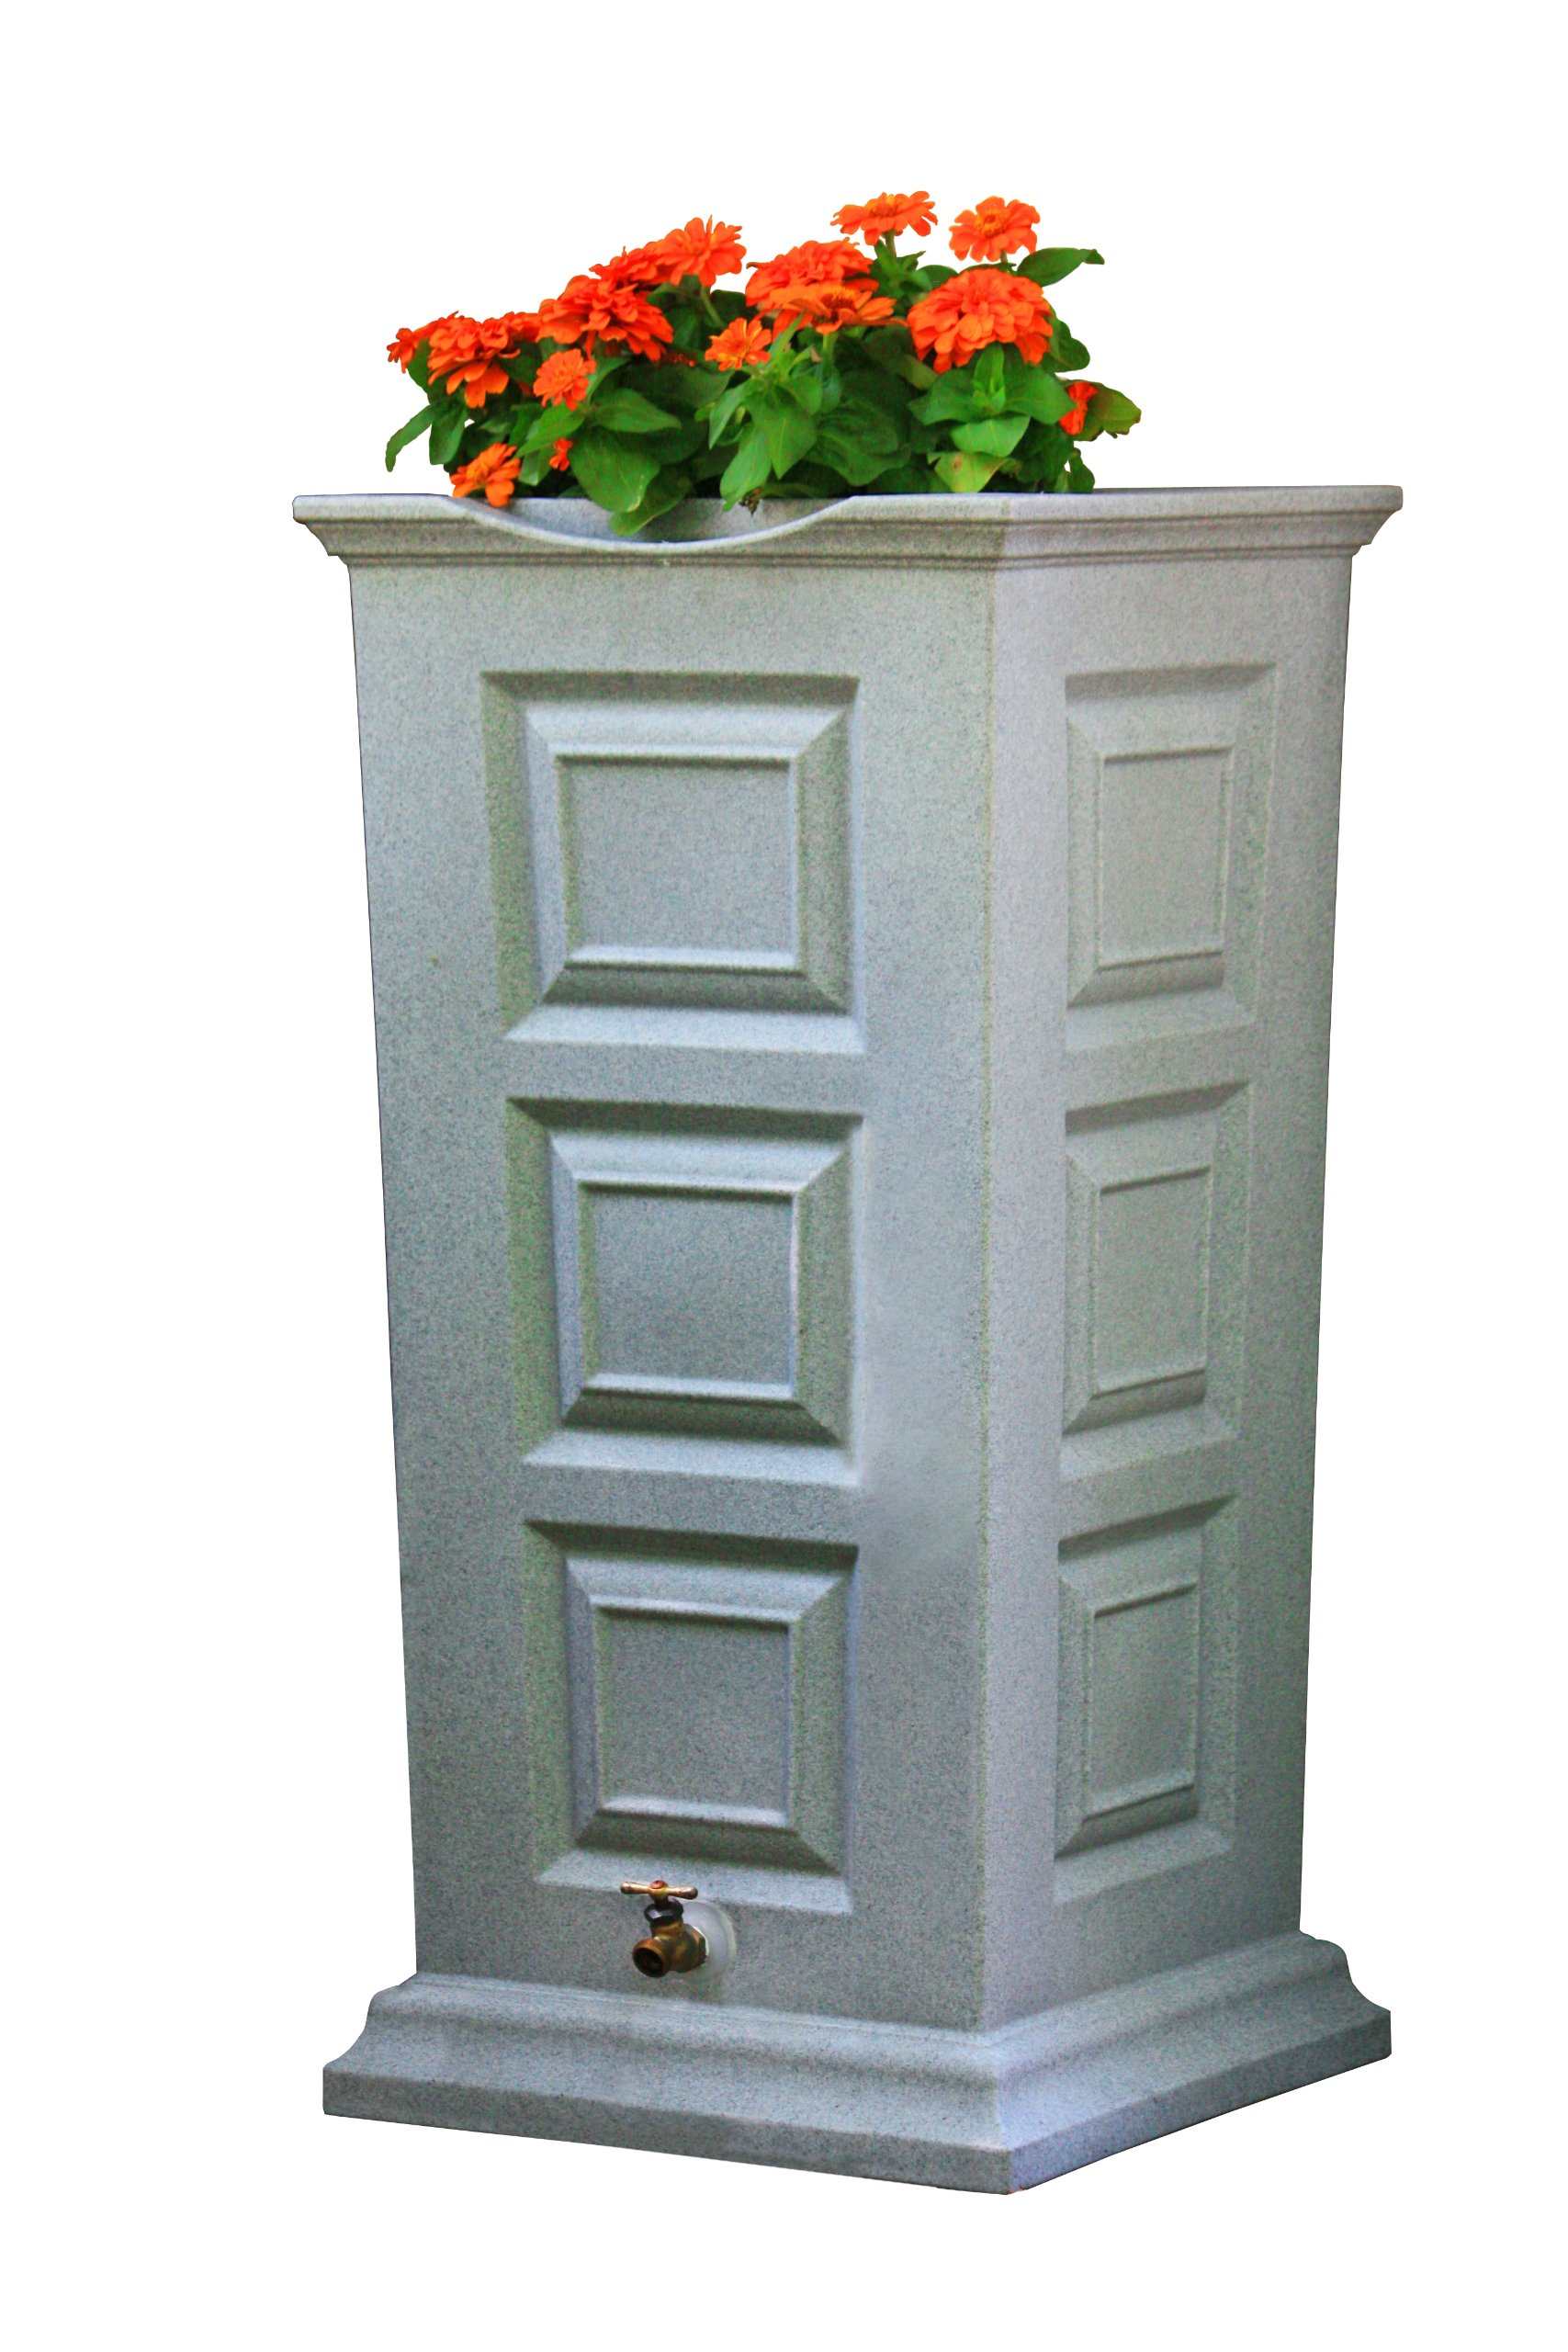 Good Ideas SV-RS-LIG Savannah Rain Barrel 55-Gallon, Light Granite by Good Ideas